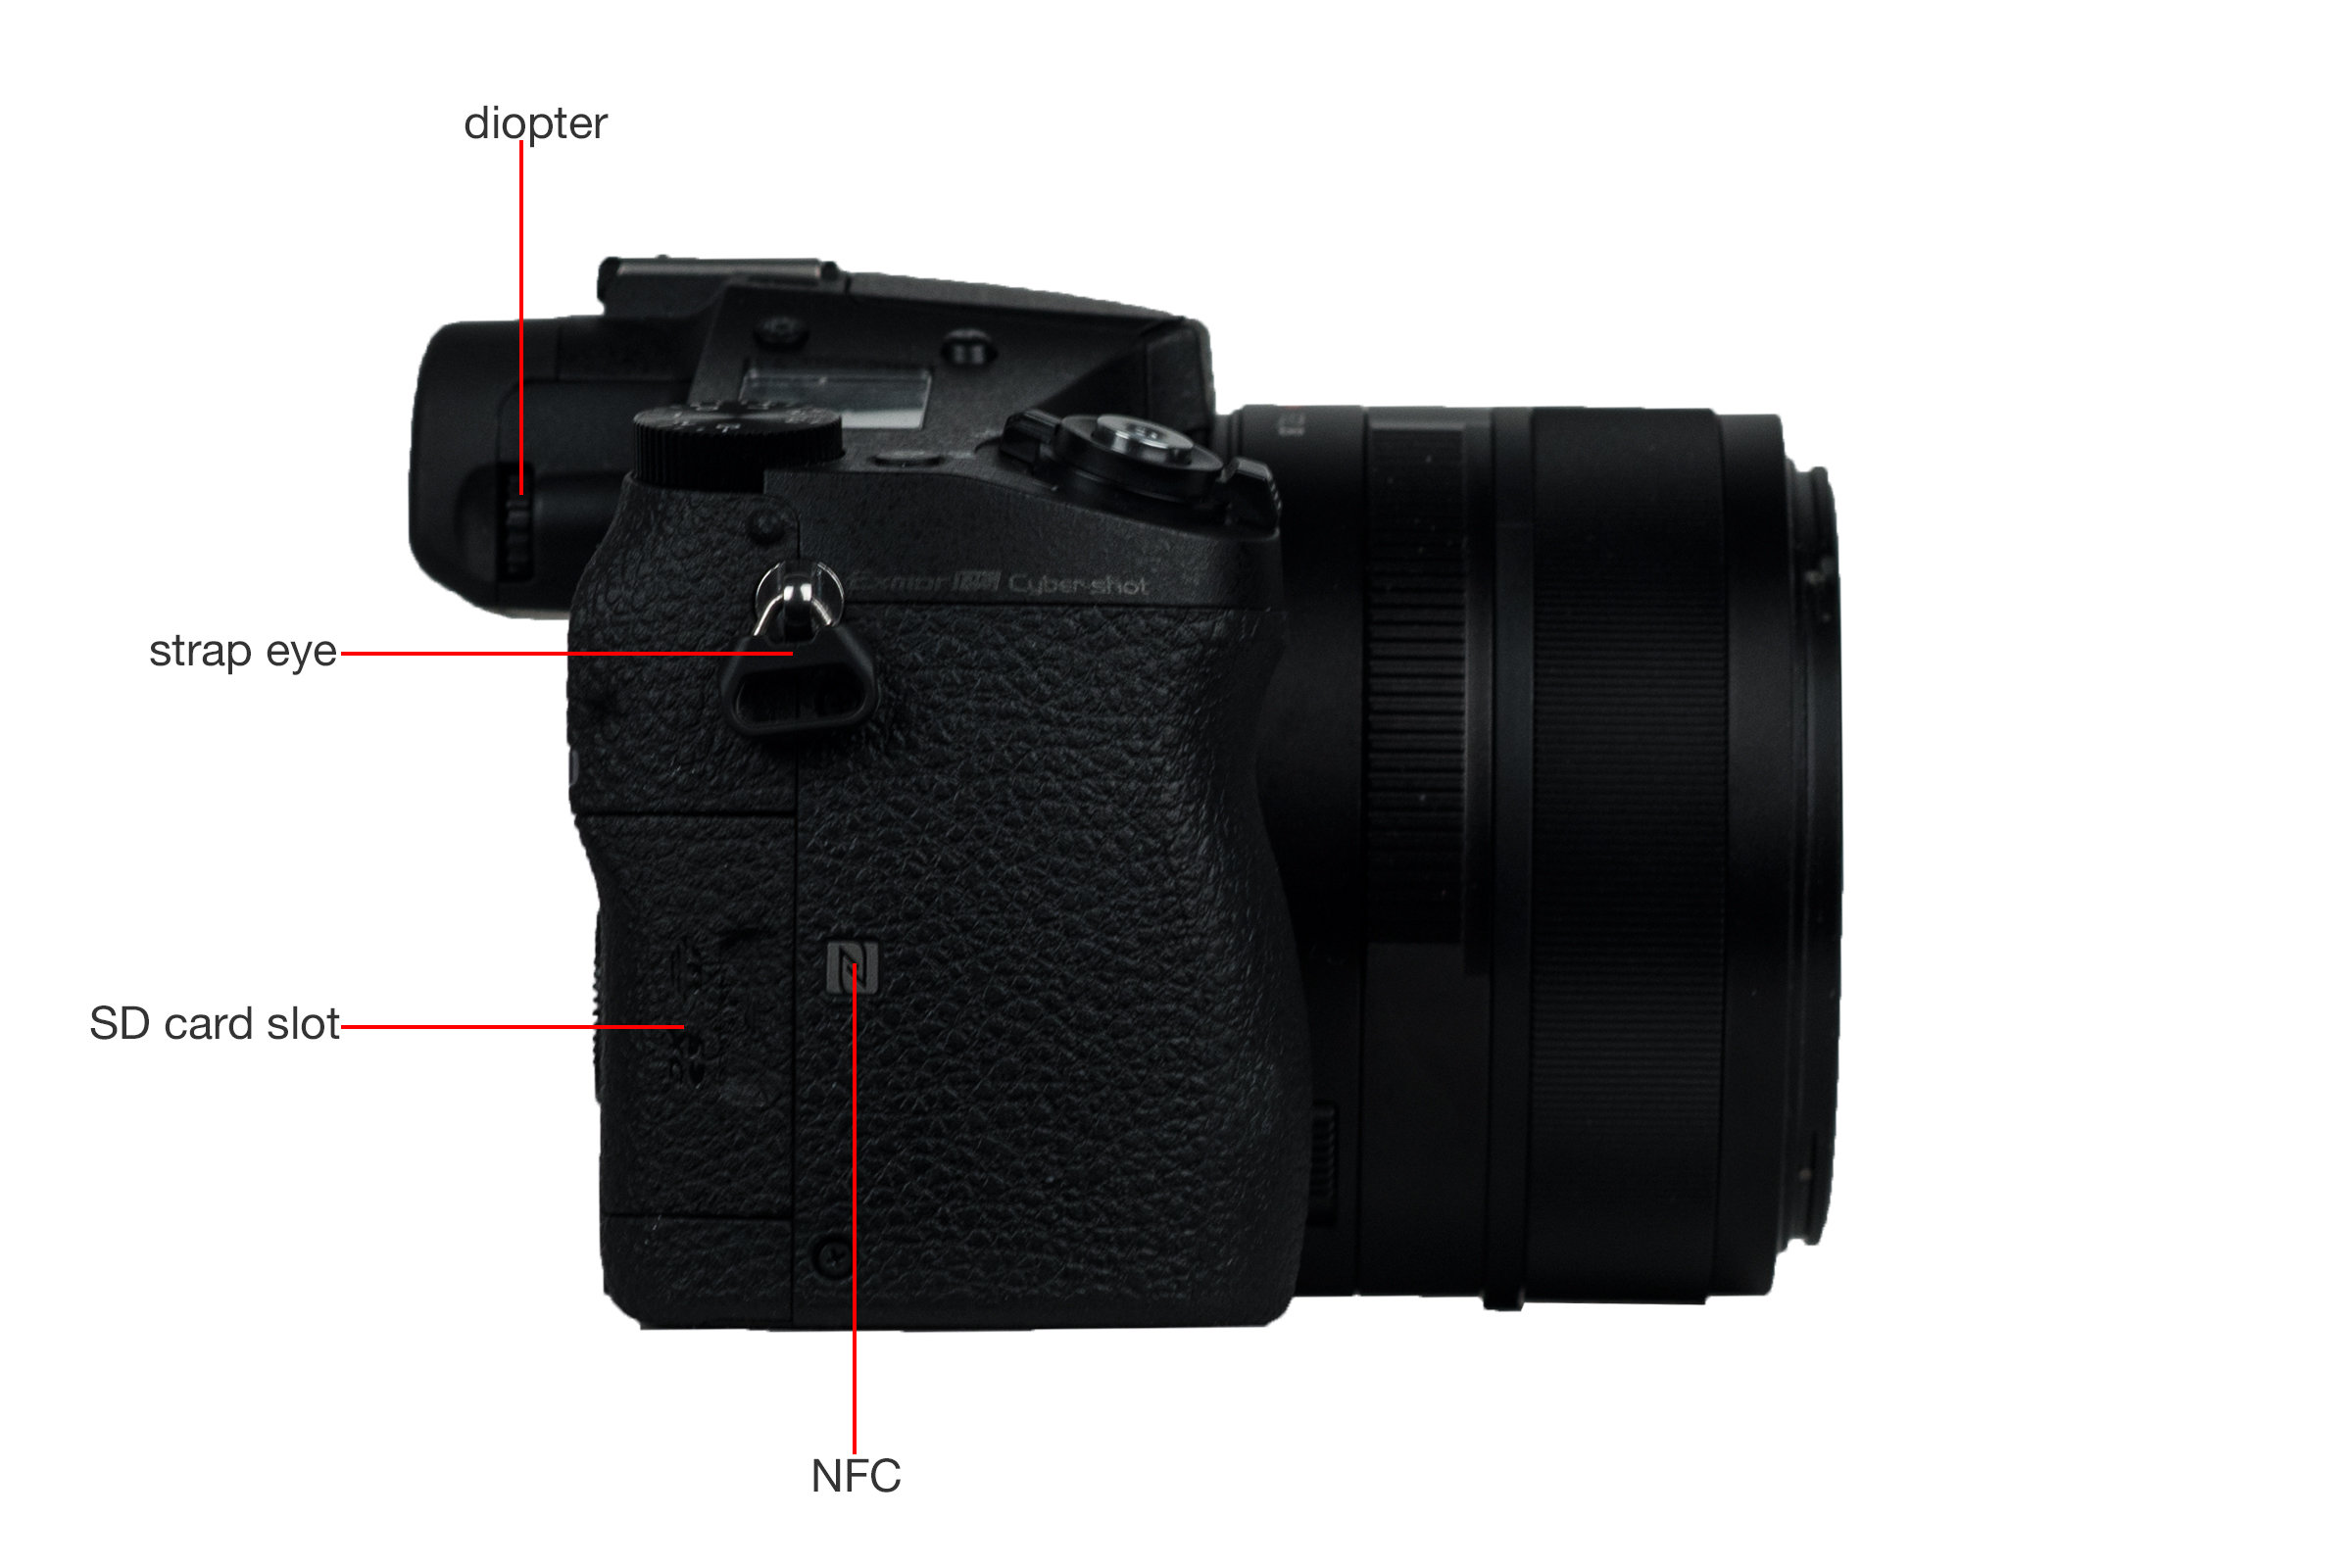 Right side view of the Sony Cyber-Shot RX10 II.